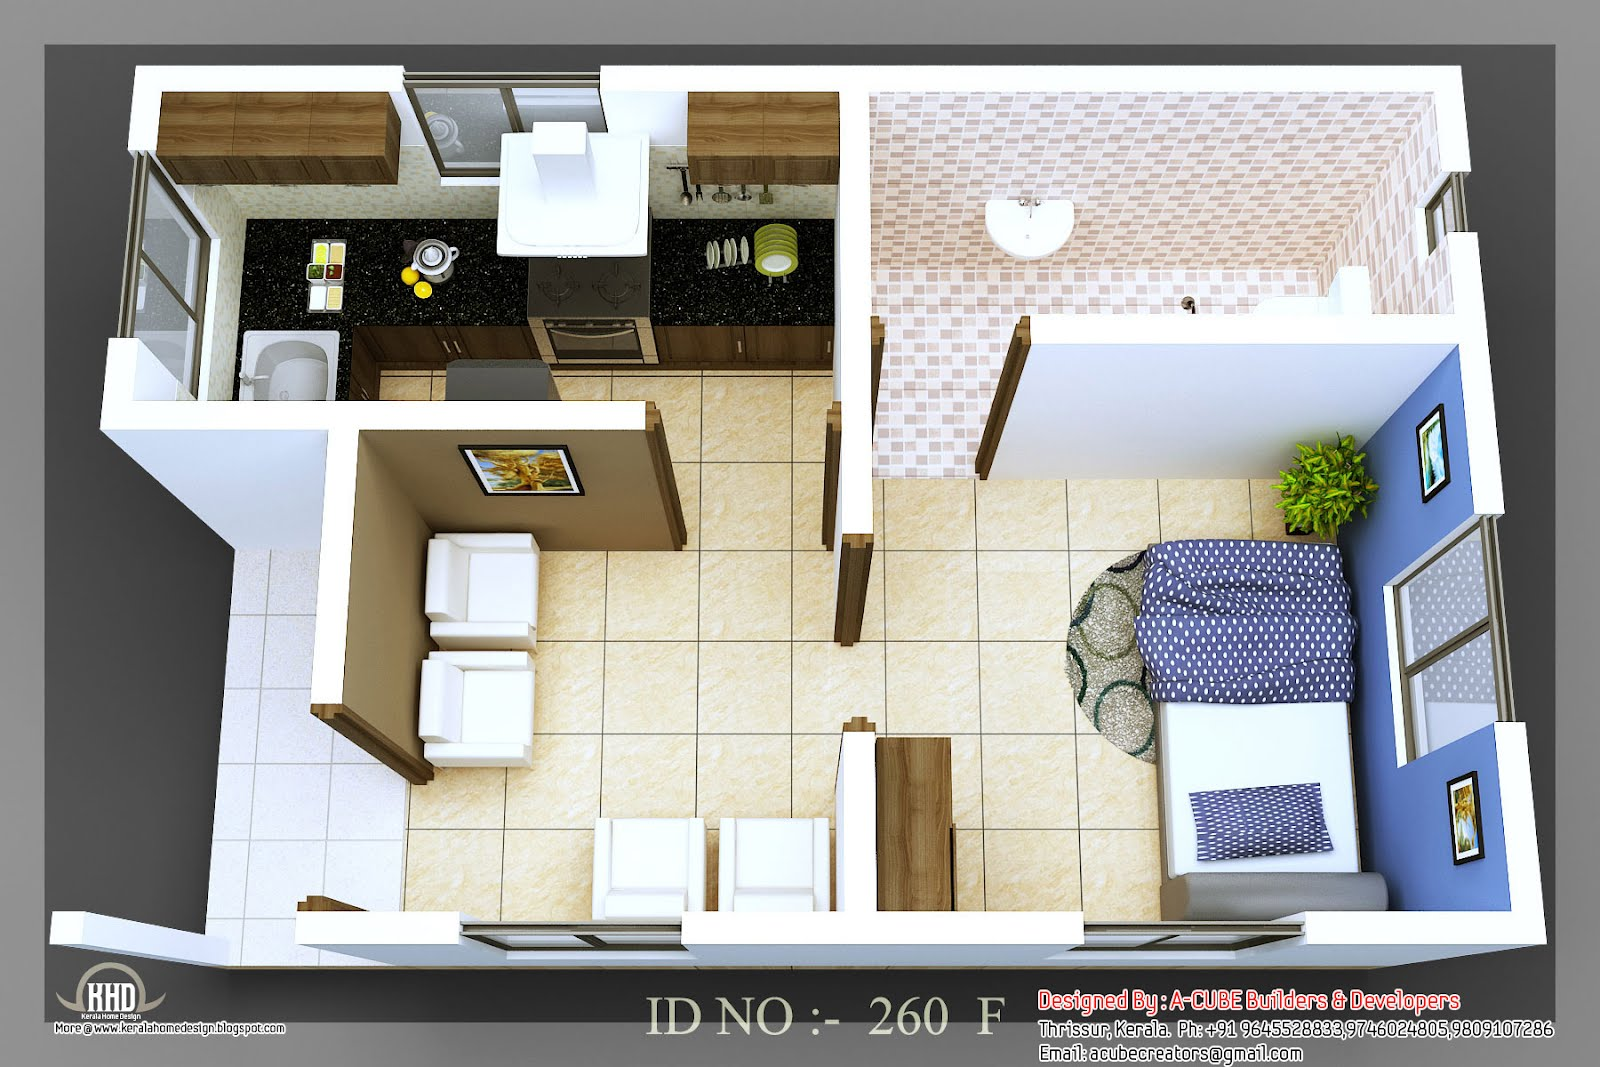 3d isometric views of small house plans home appliance for Small residence design